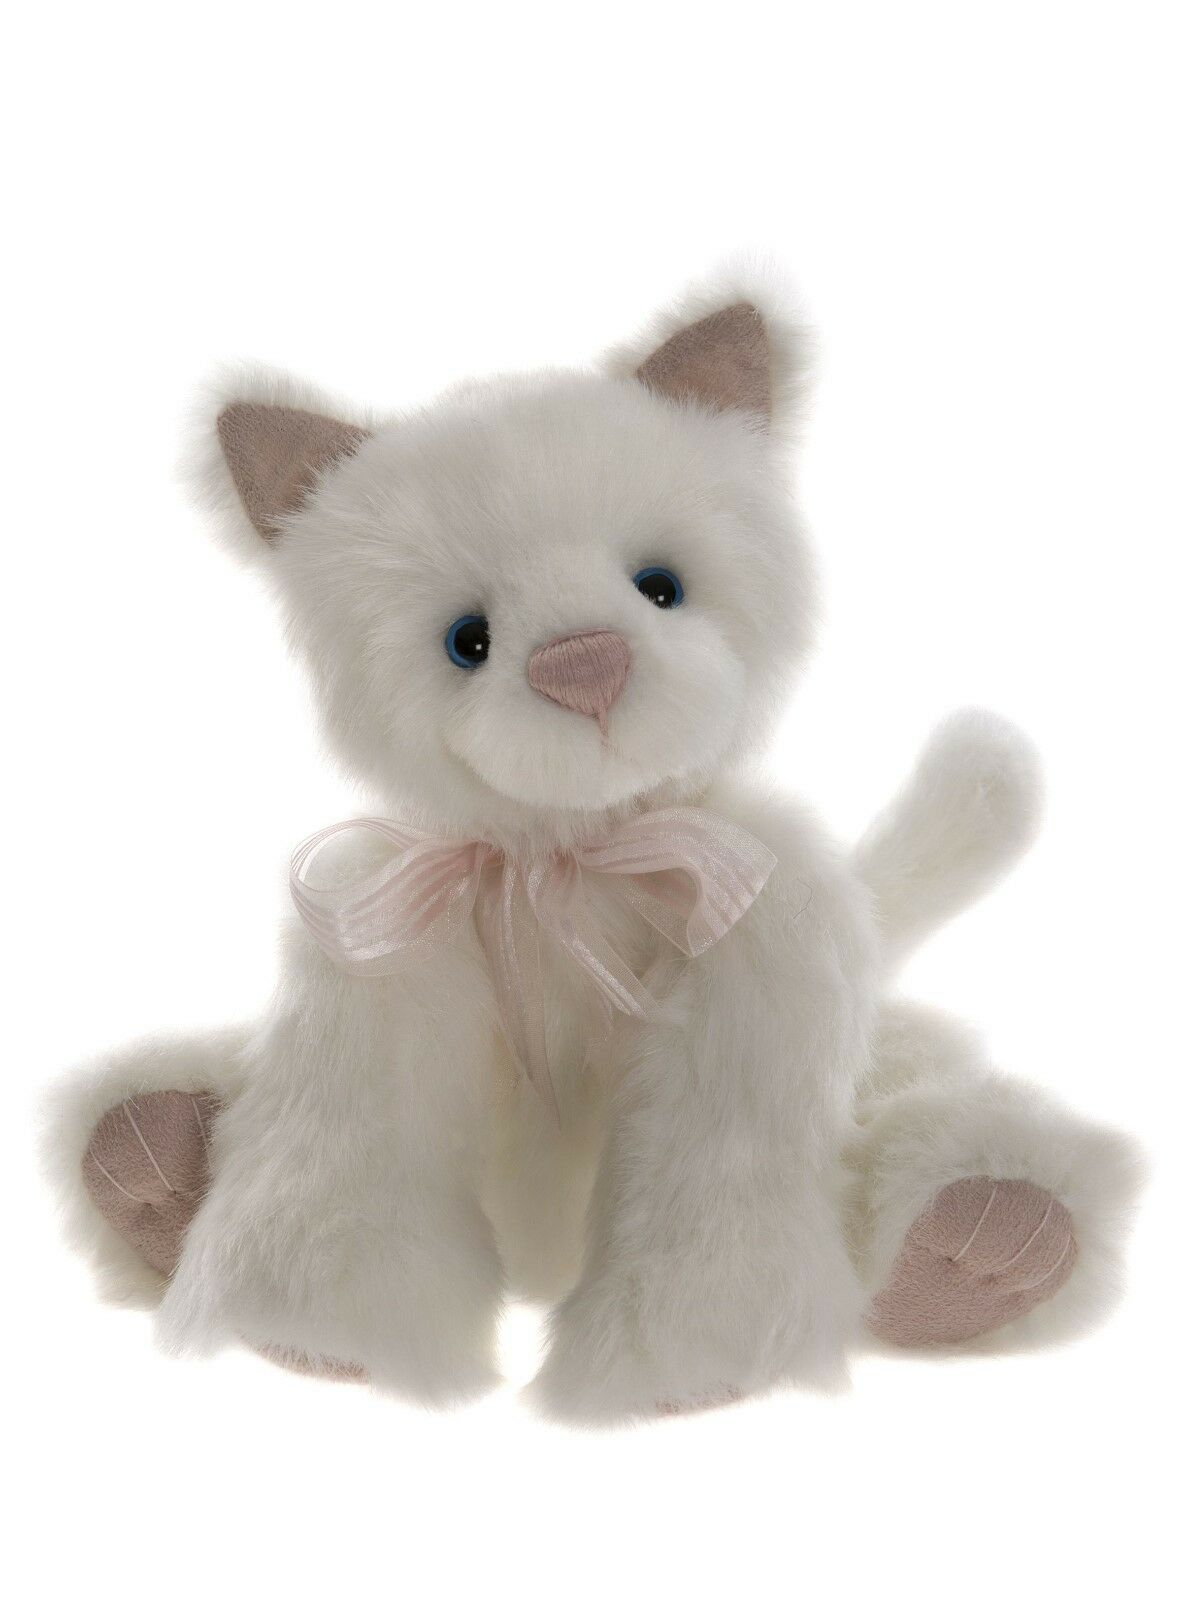 CHARLIE BEARS - SNOWDROP KITTEN - WINTER WONDERLAND COLLECTION